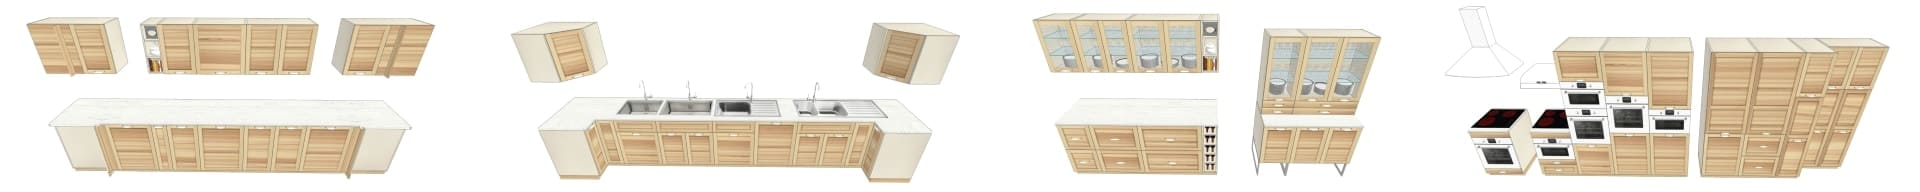 COLLECTION 3D IKEA TORHAMN